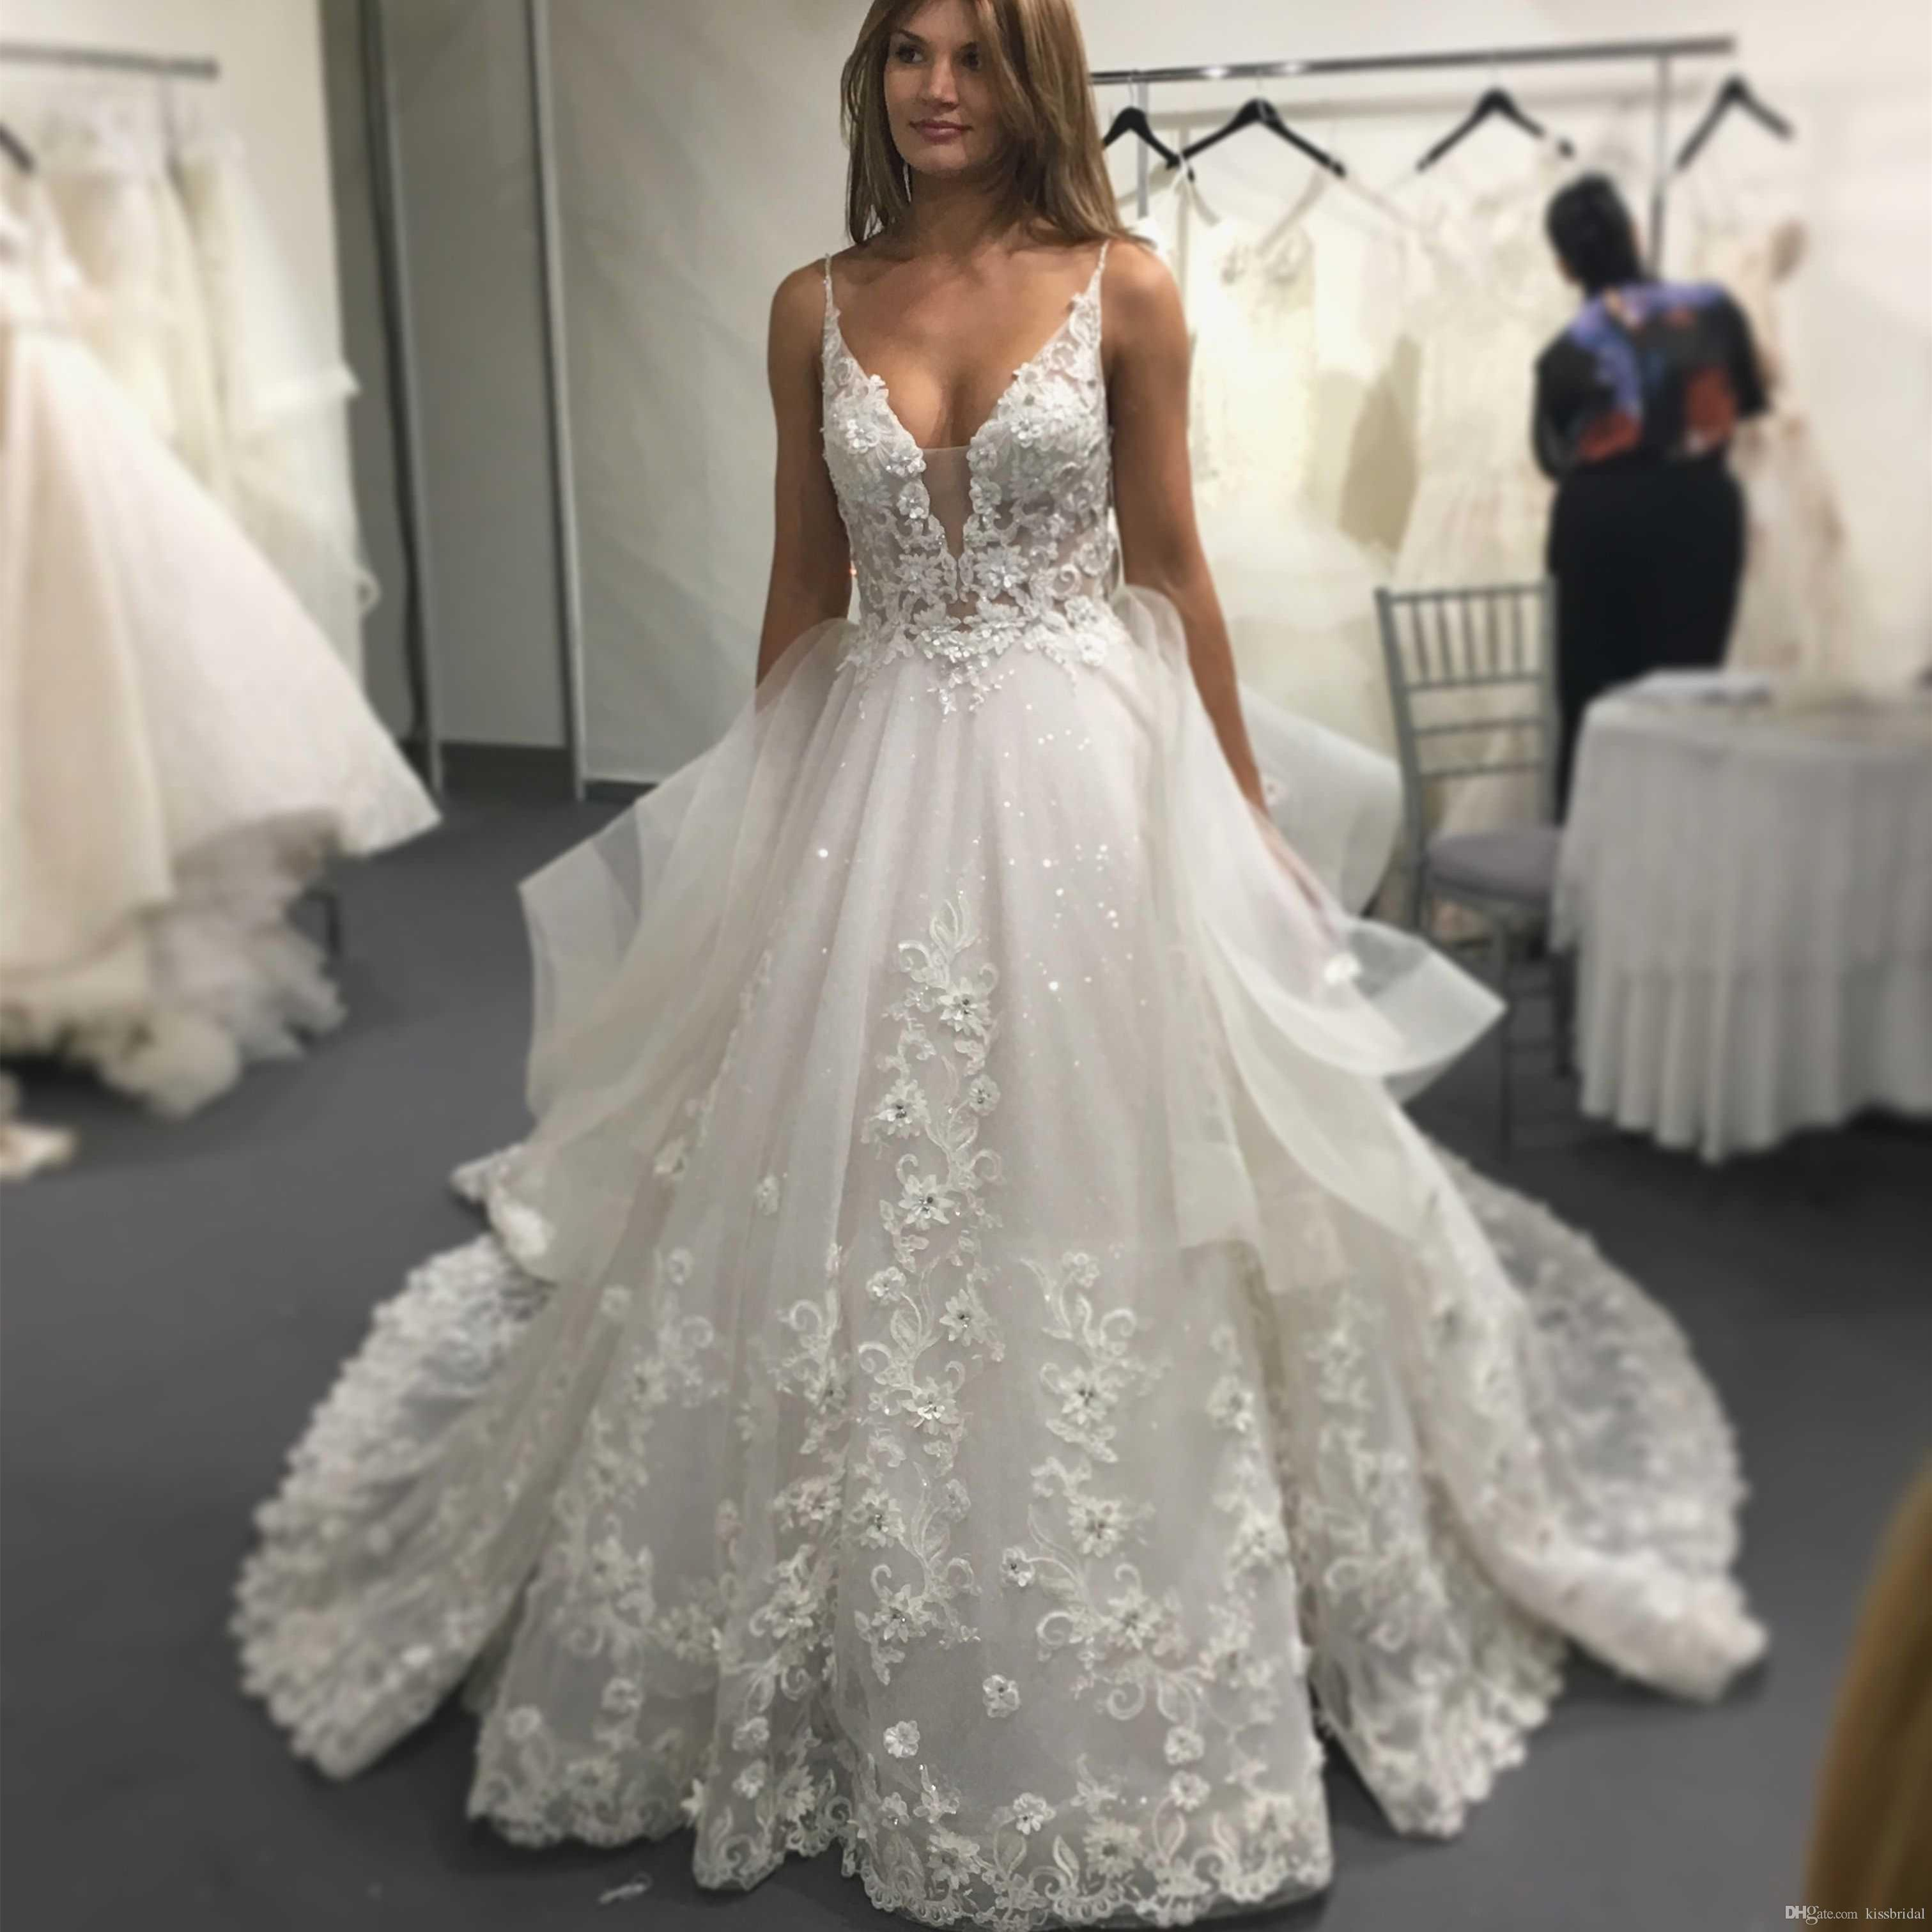 3a32c742cd64e Elegant Lace Wedding Dresses 2019 A Line Spaghetti V Neck Backless Bridal  Gowns Bead Lace Appliques Tulle Sheer Formal Gowns For Bride Gorgeous  Wedding ...